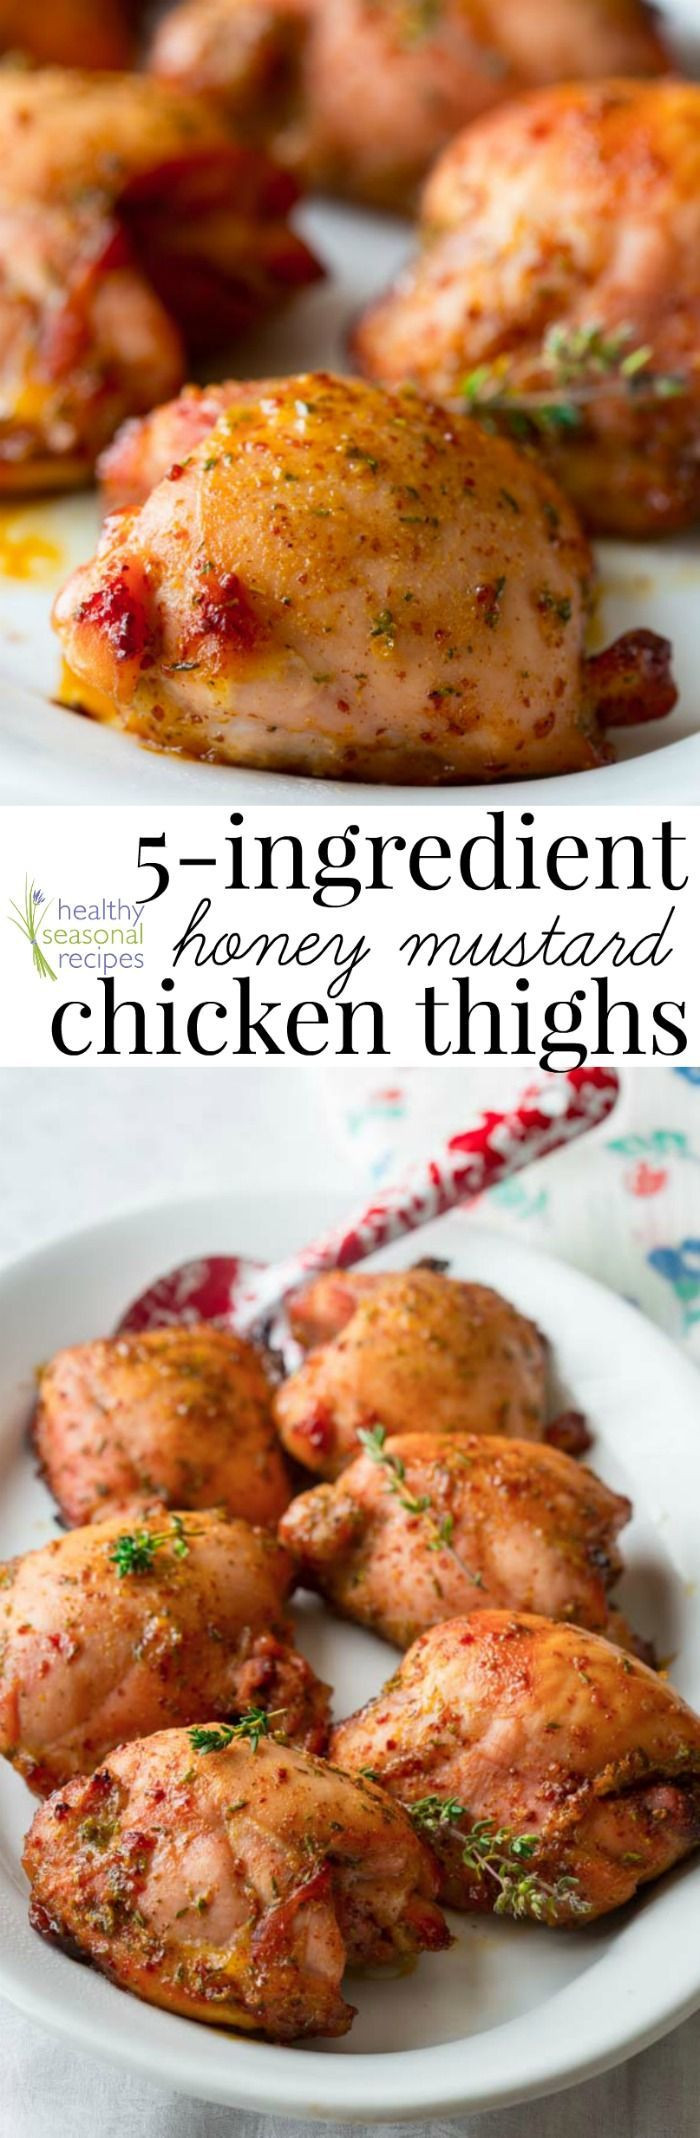 Healthy Way To Cook Chicken Thighs  100 Healthy Chicken Thigh Recipes on Pinterest